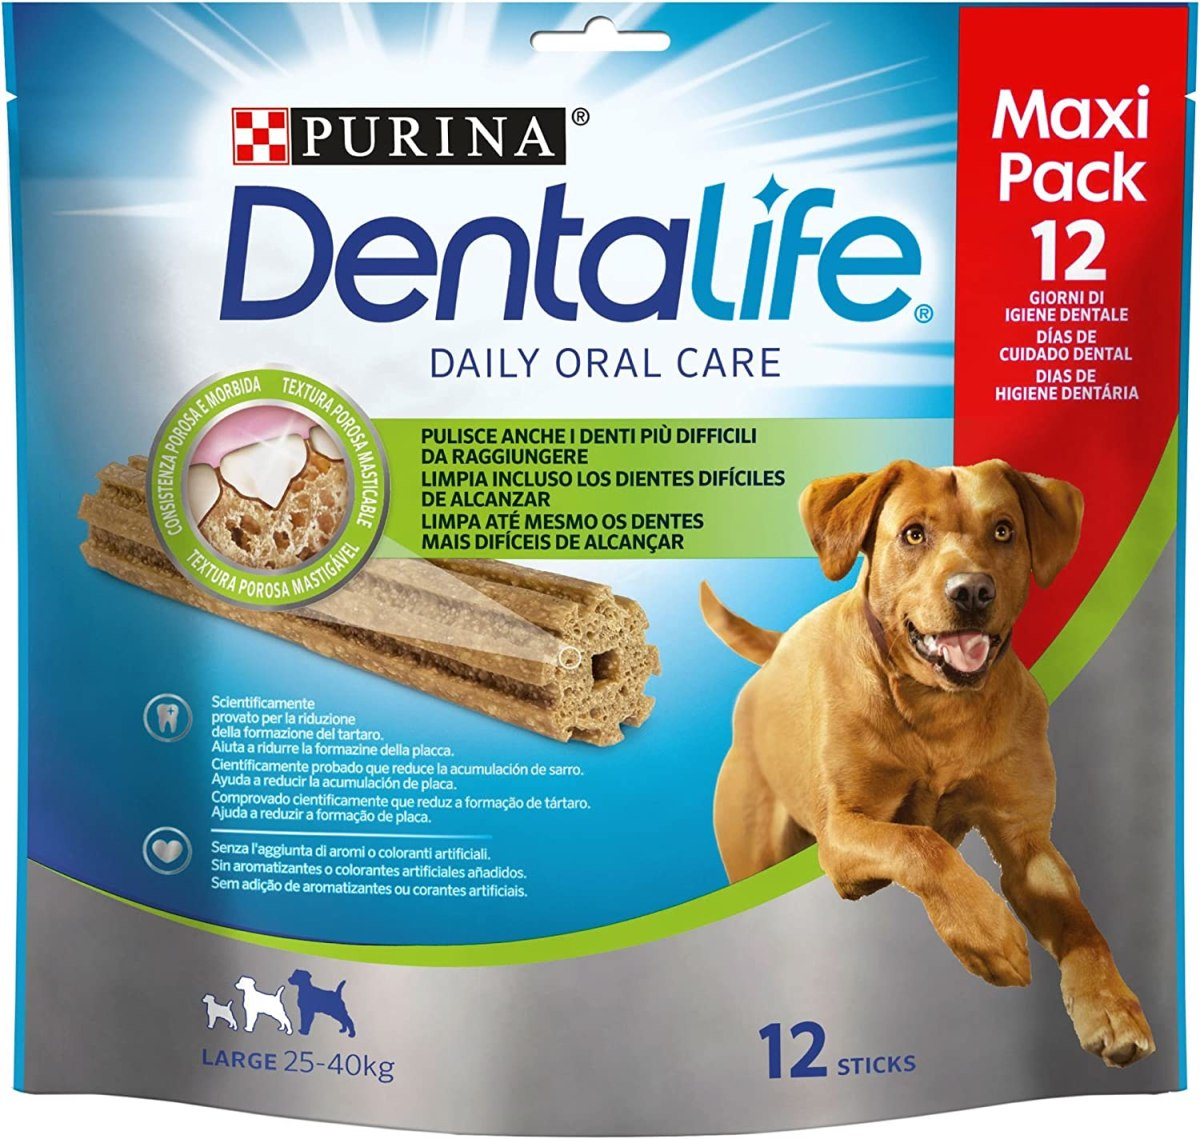 Purina Dentalife Perro Grande [5 packs x 12 sticks]